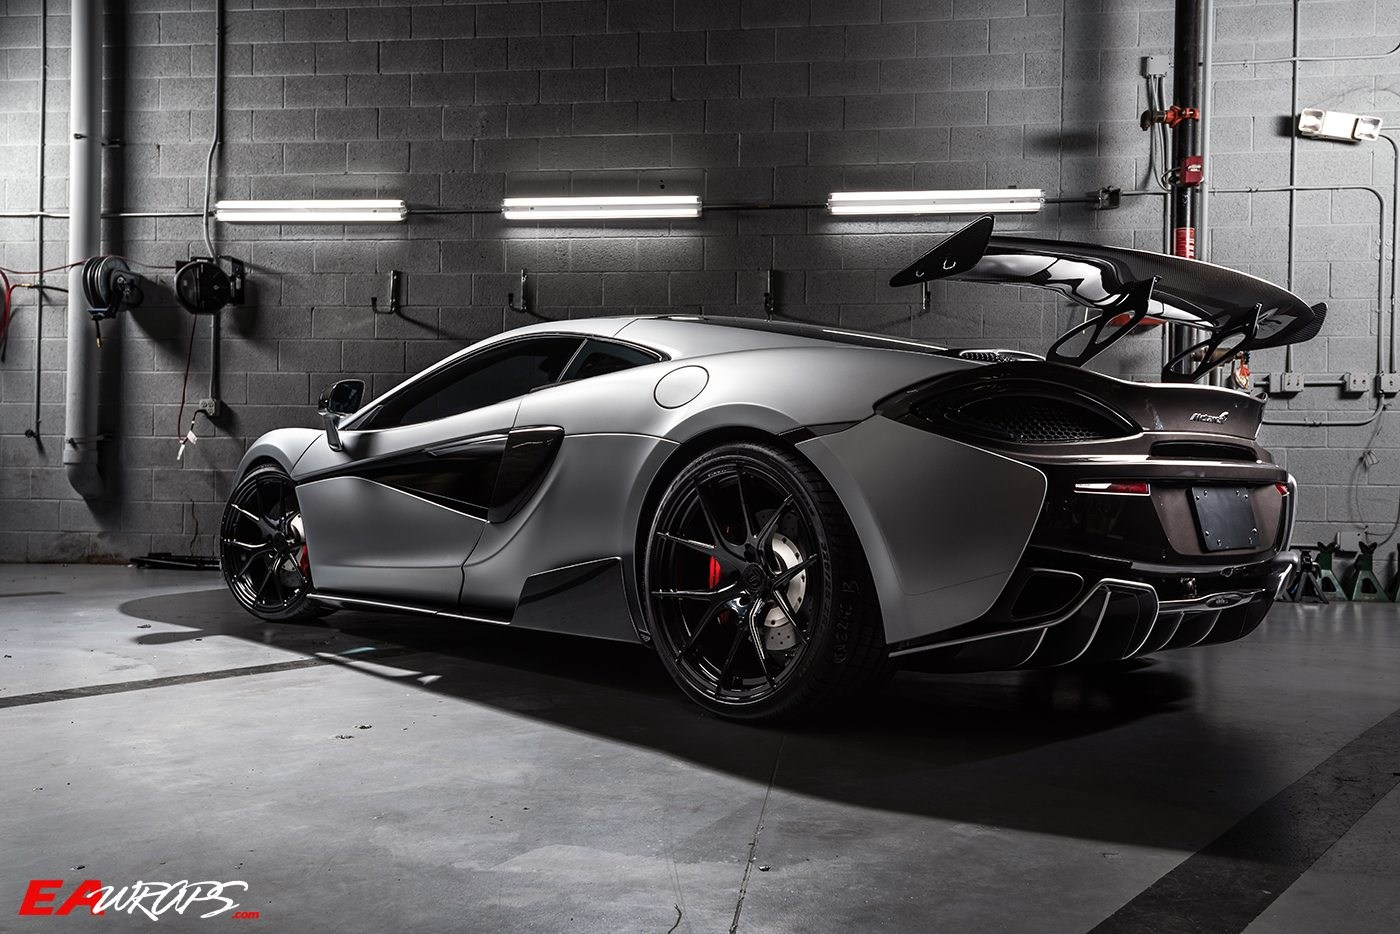 Mclaren Sport Series Gets Styling And Performance Upgrades